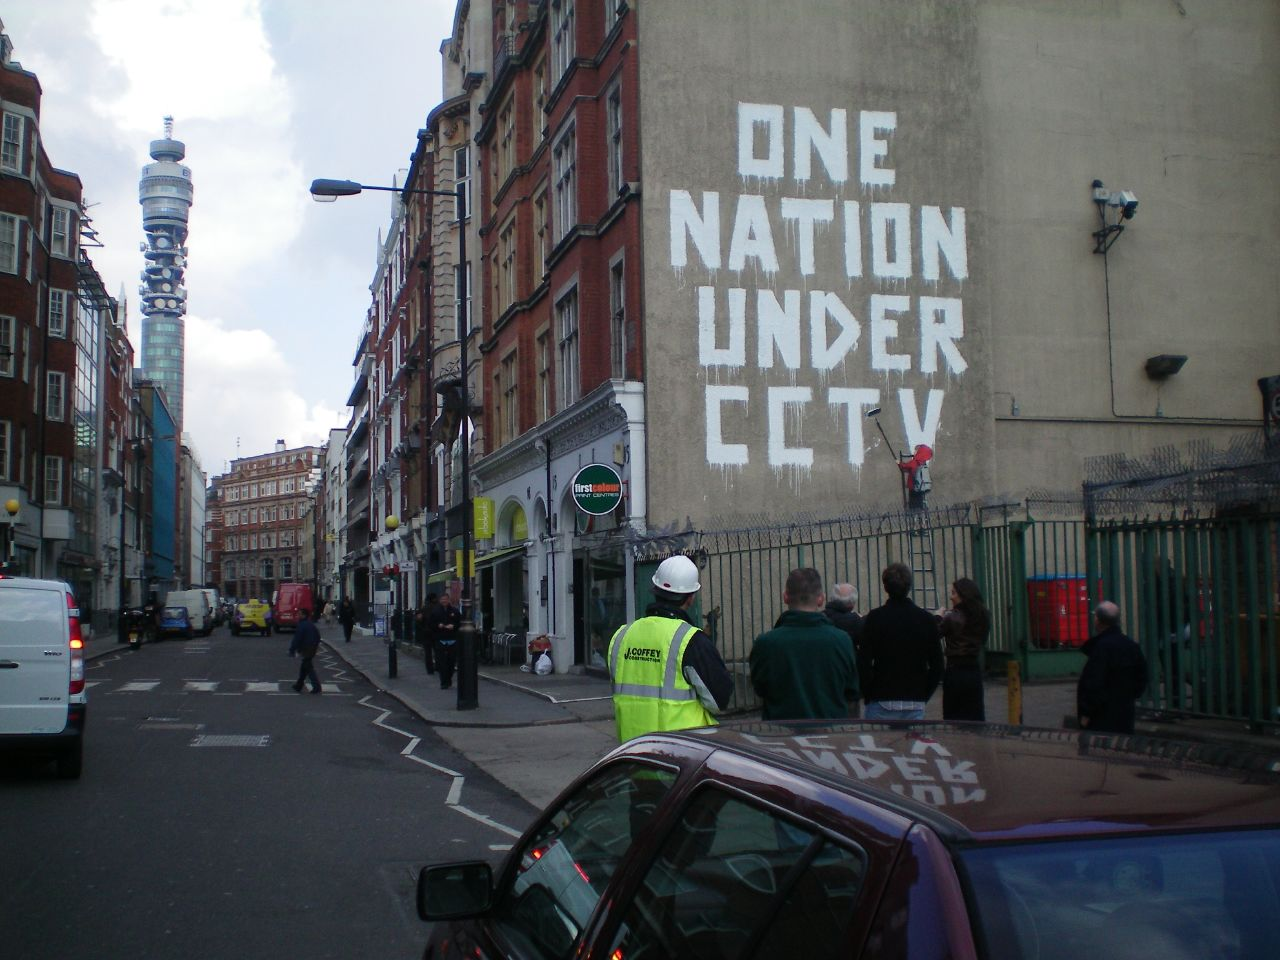 One Nation Under CCTV graffiti on a wall